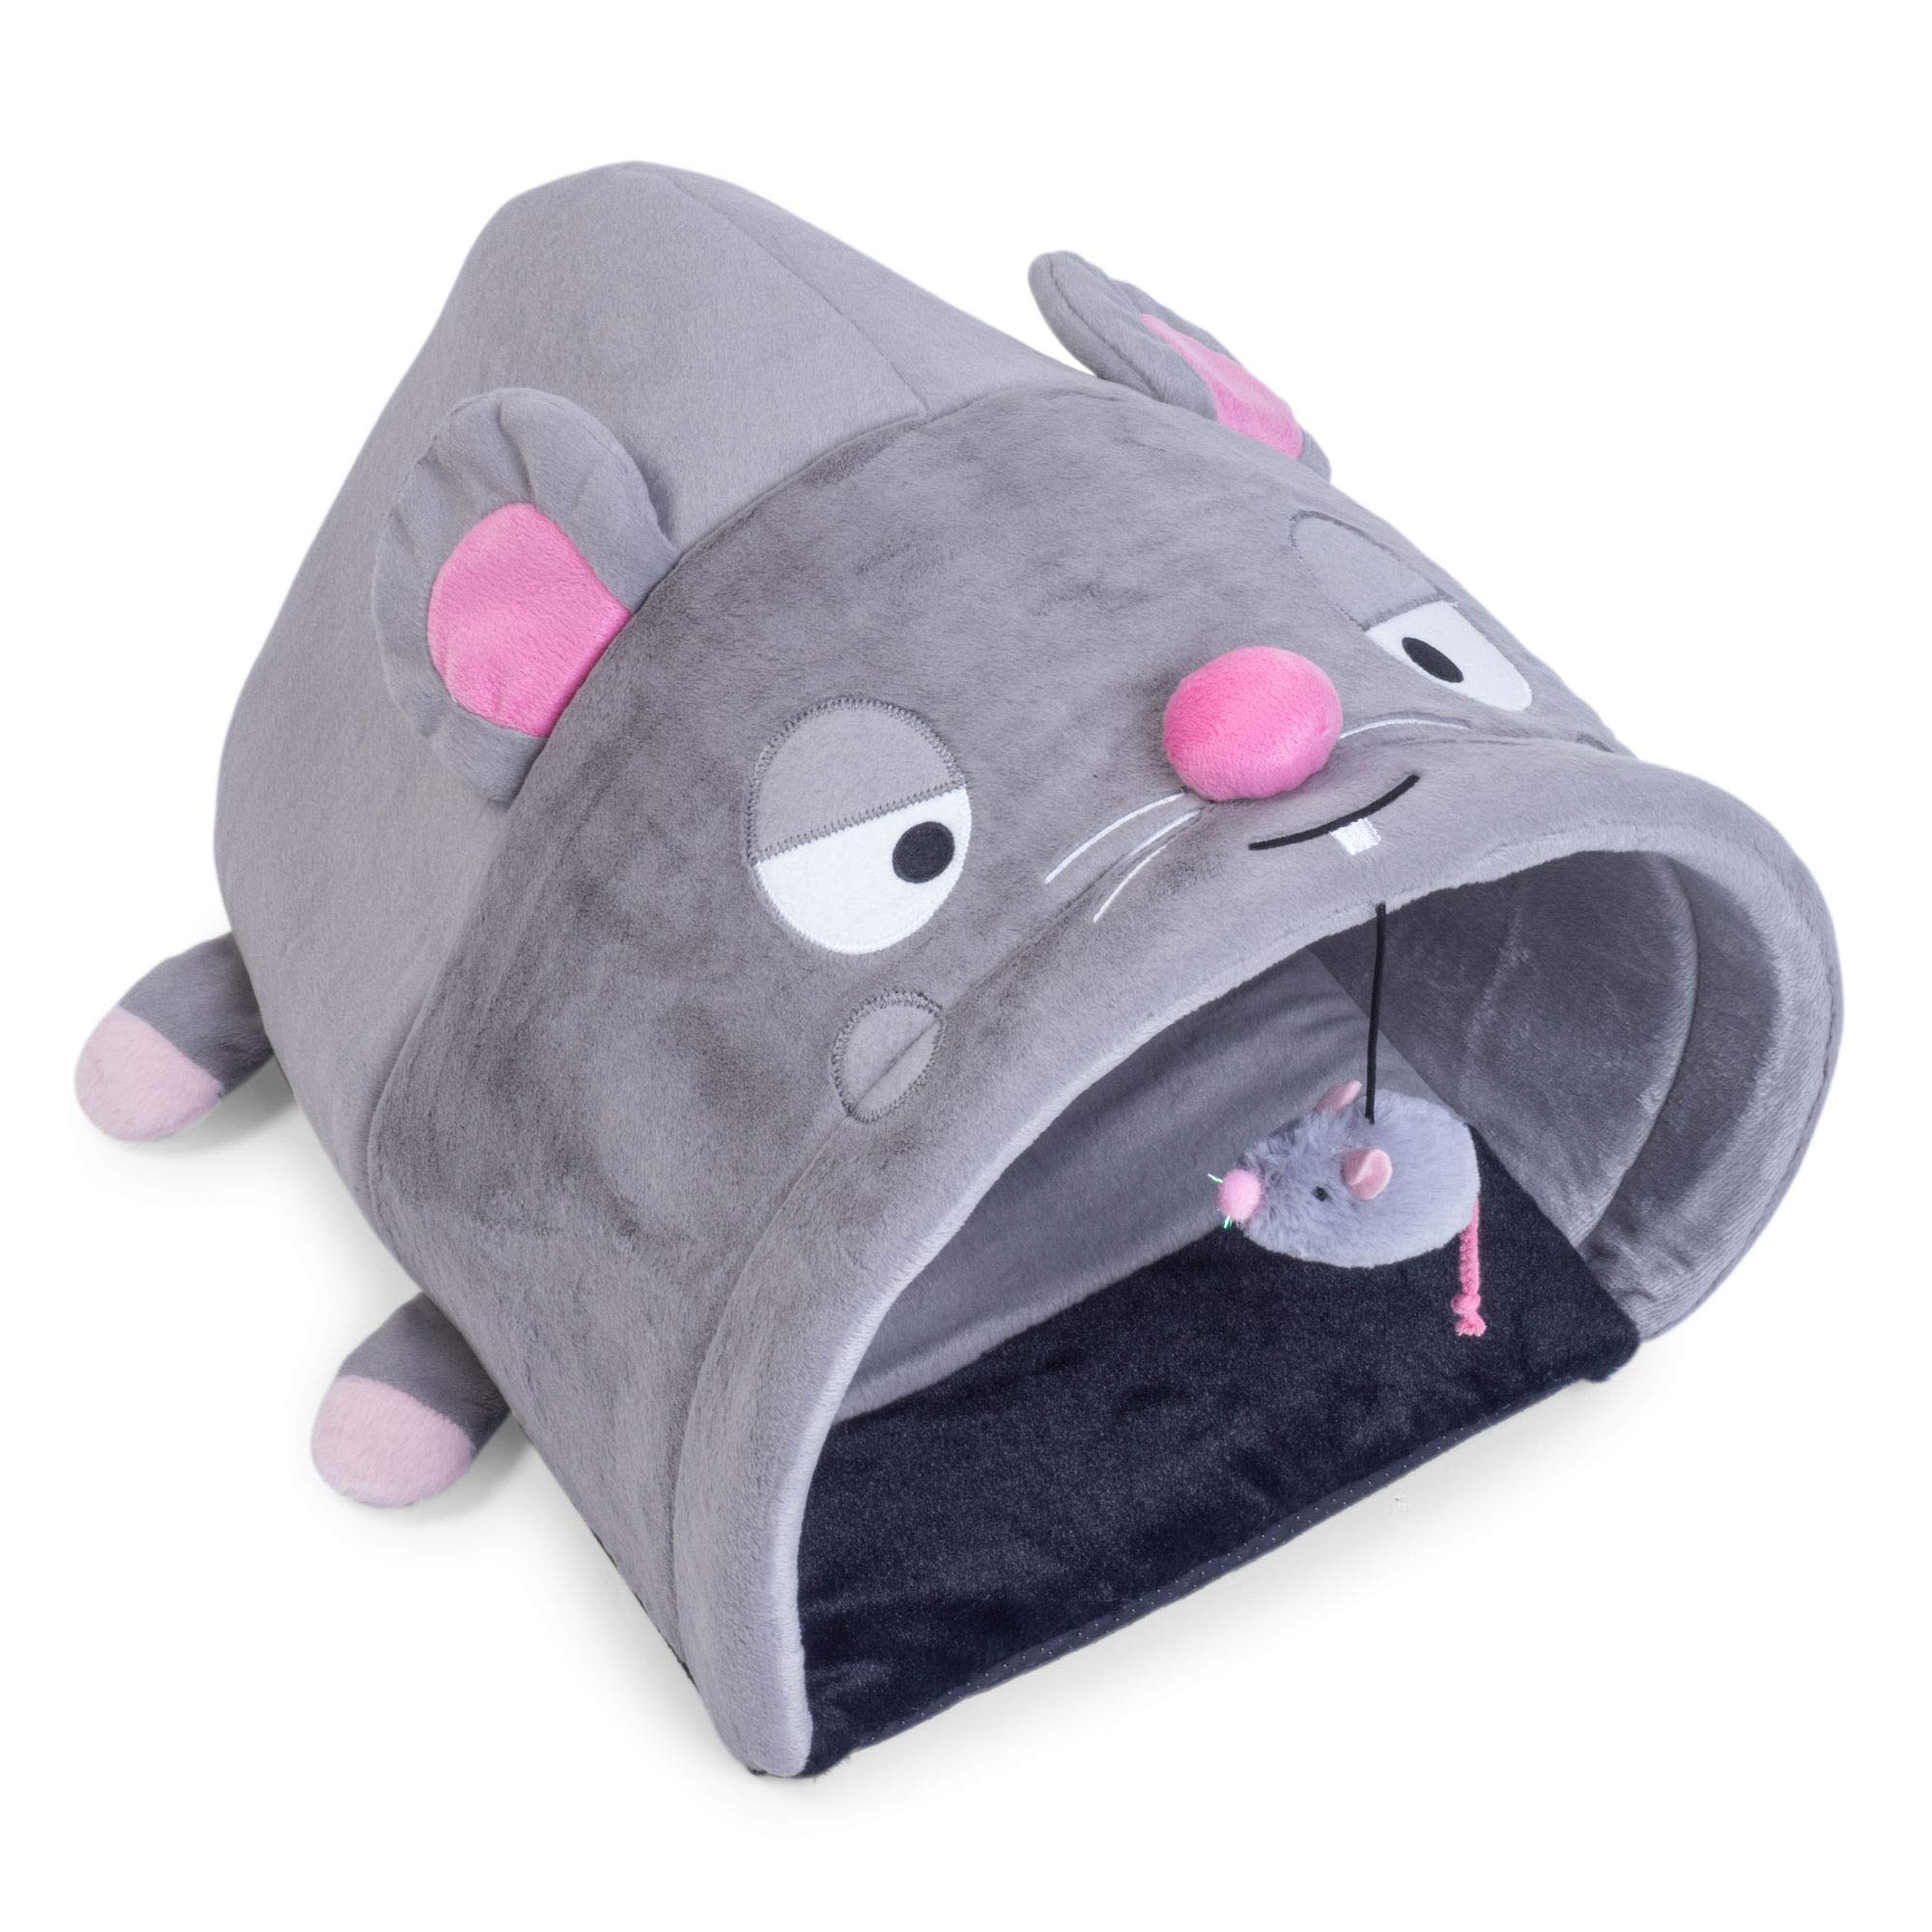 Petface Angry Mouse Cat Hideaway by Petface (Image #1)